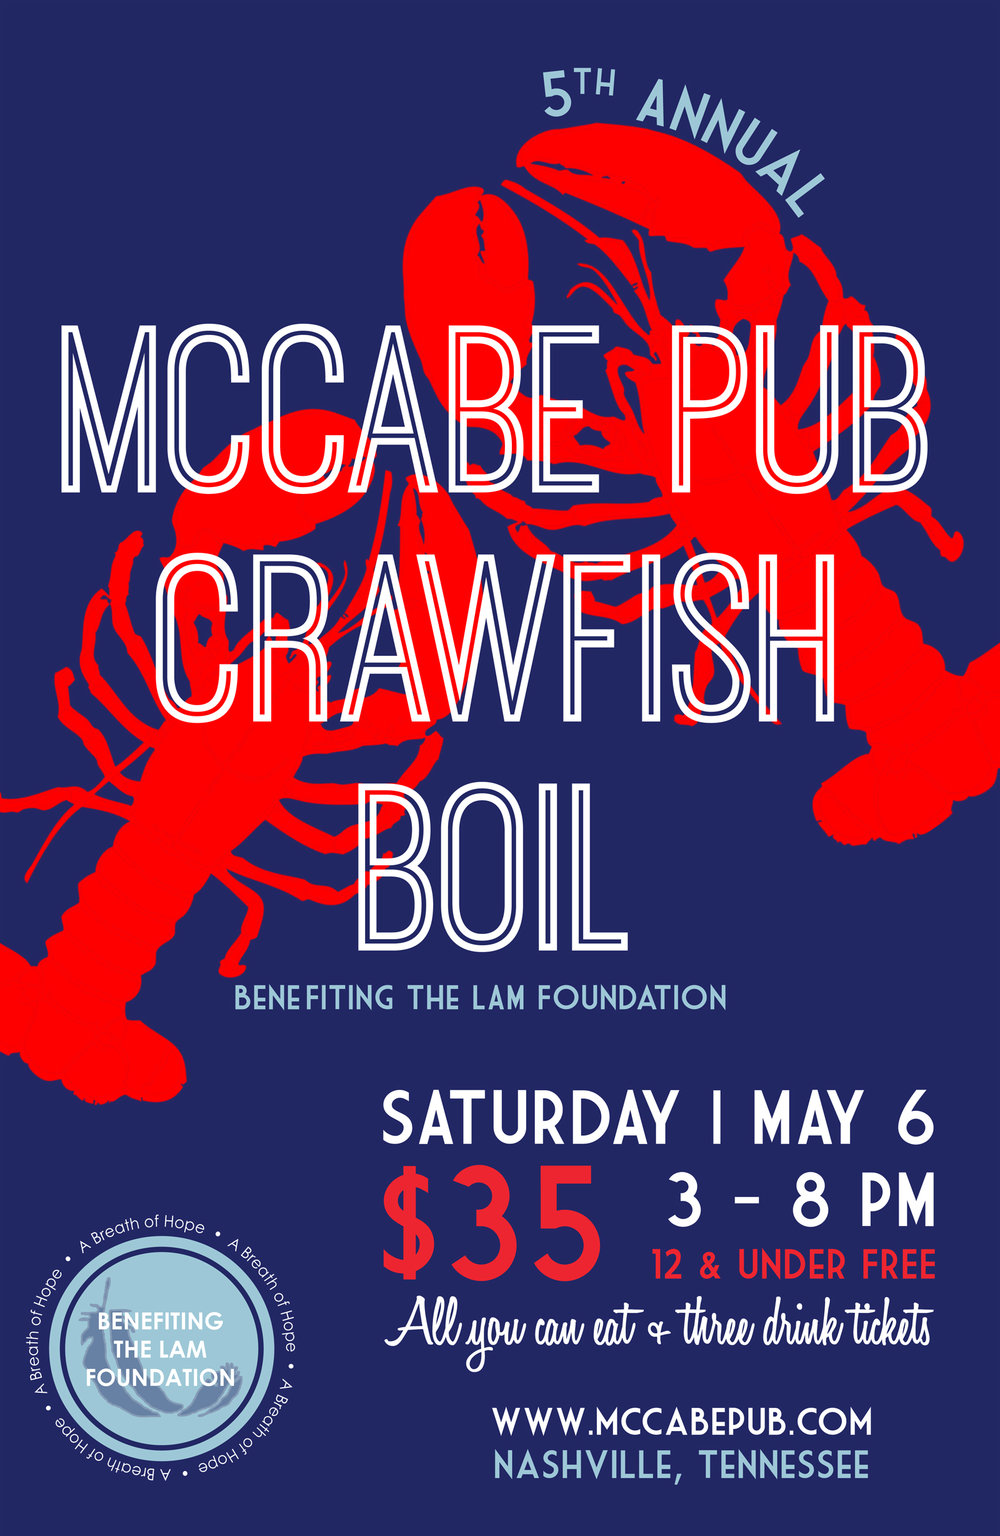 McCabe Pub 5th Annual Crawfish Boil Fundraiser LAM Foundation